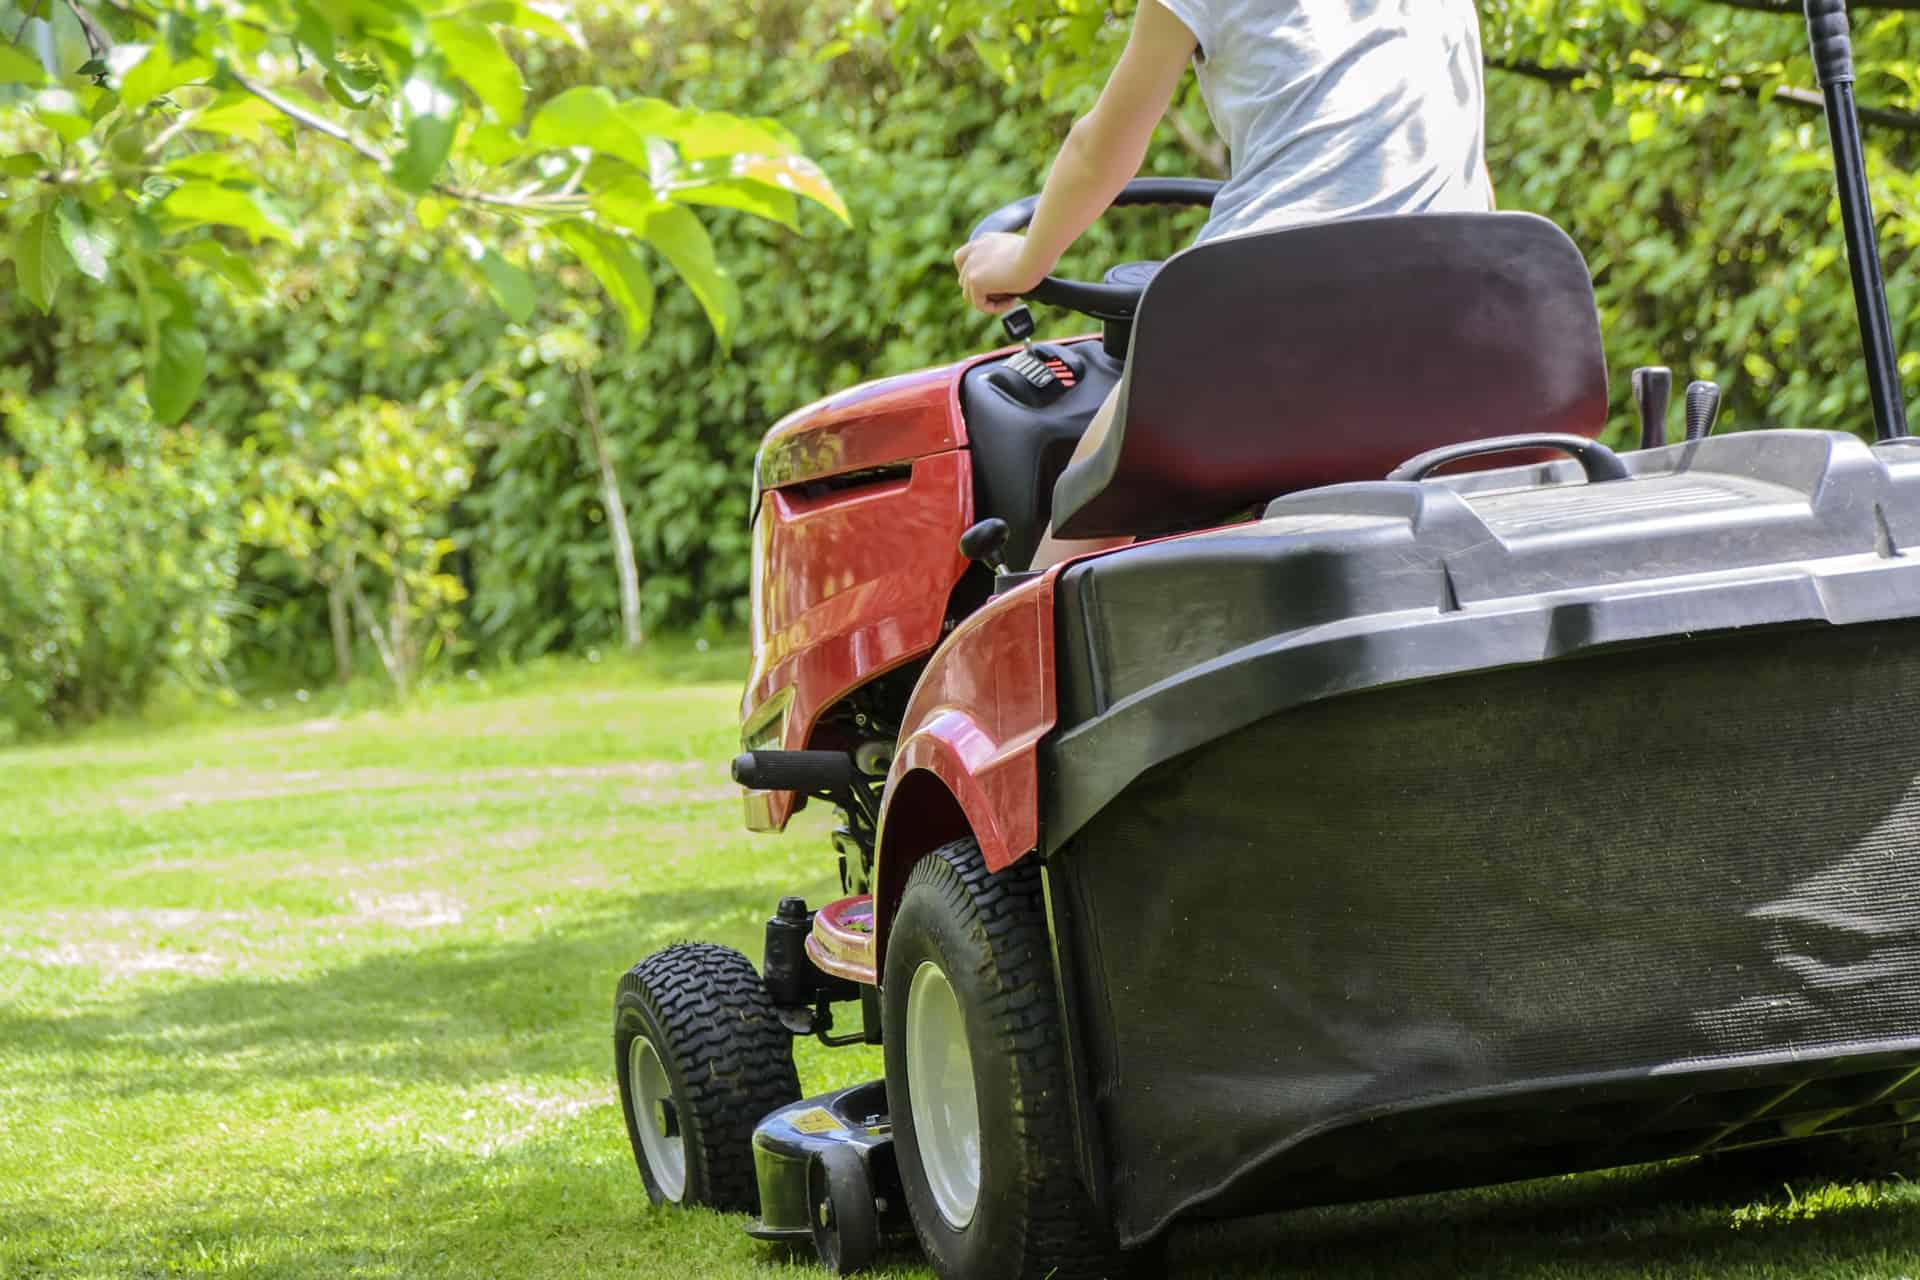 woman on riding lawn mower